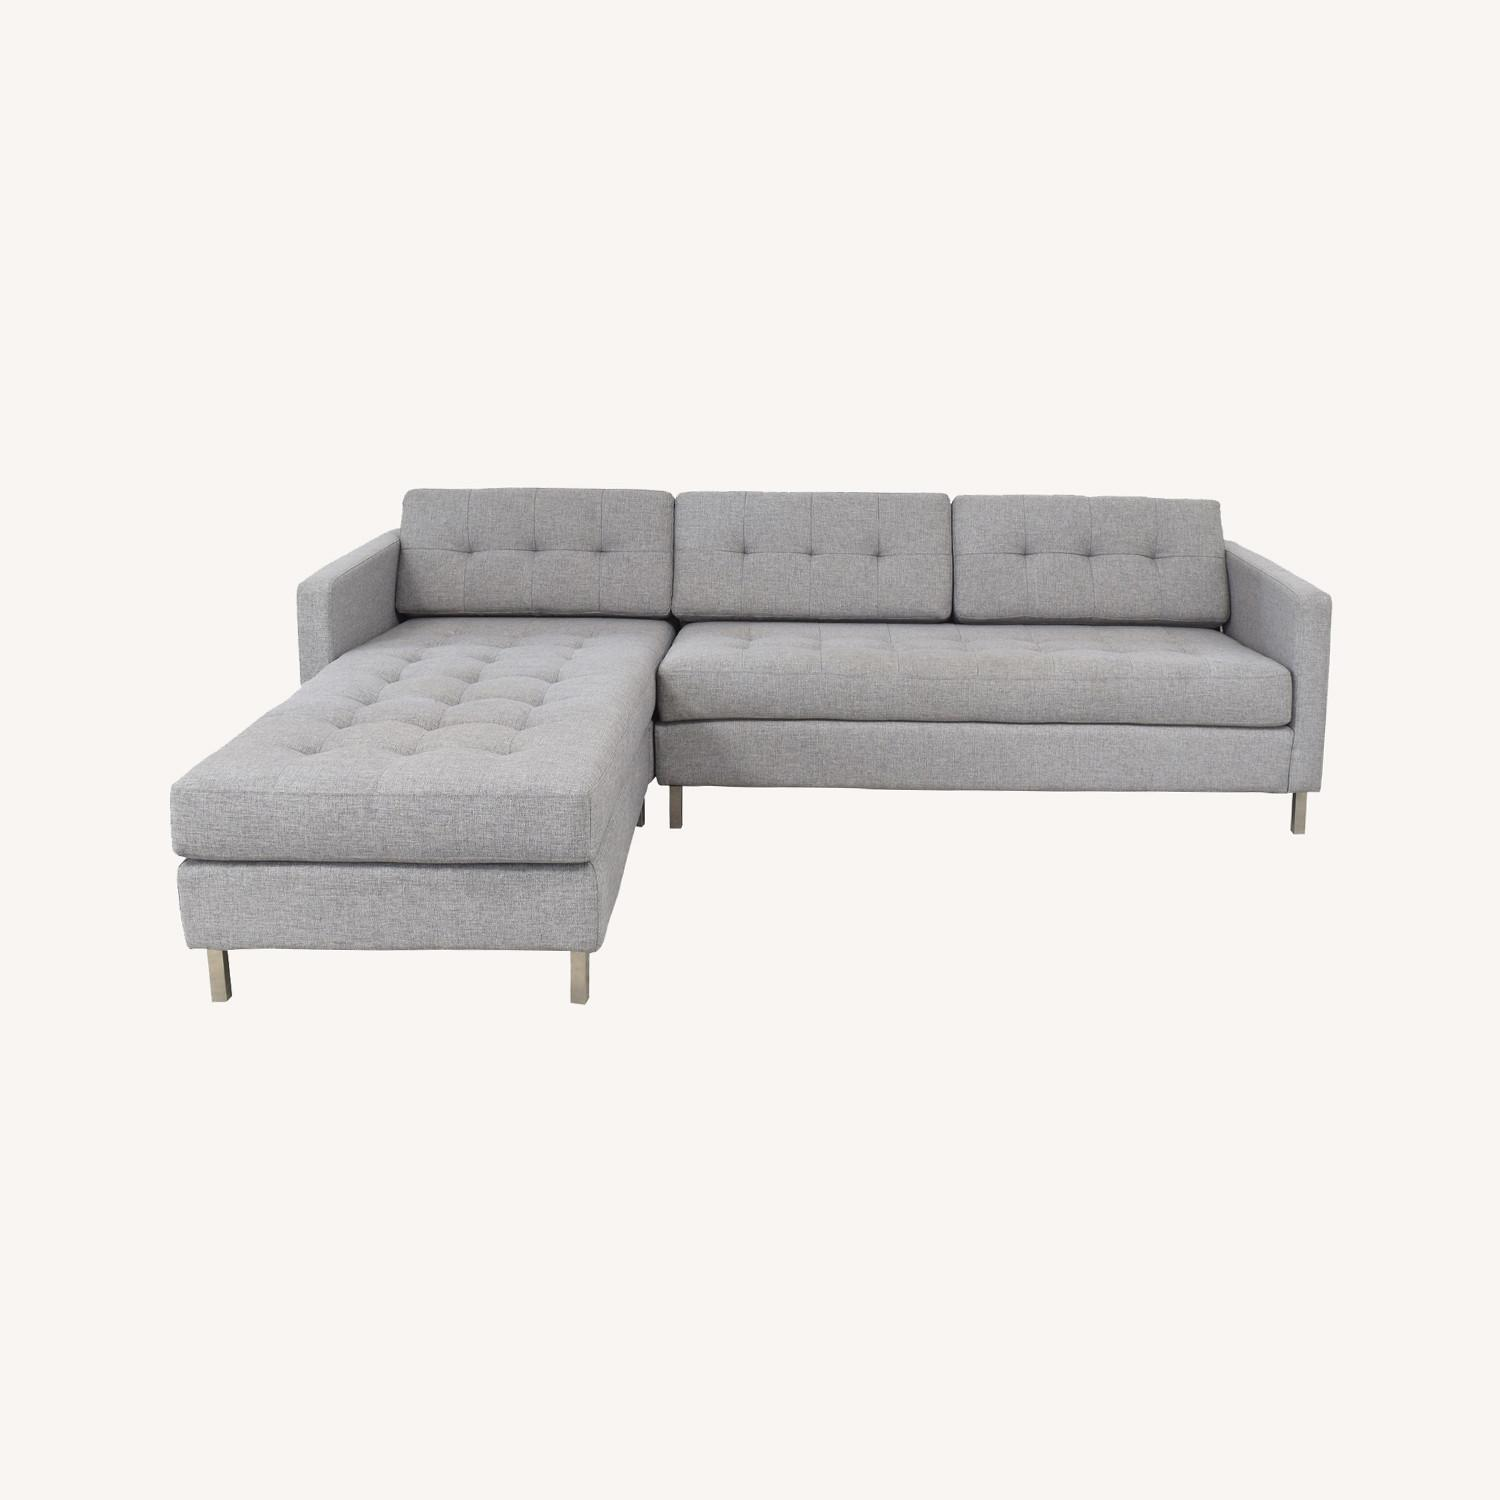 CB2 Ditto II Tufted Chaise Sectional Sofa Grey - image-0